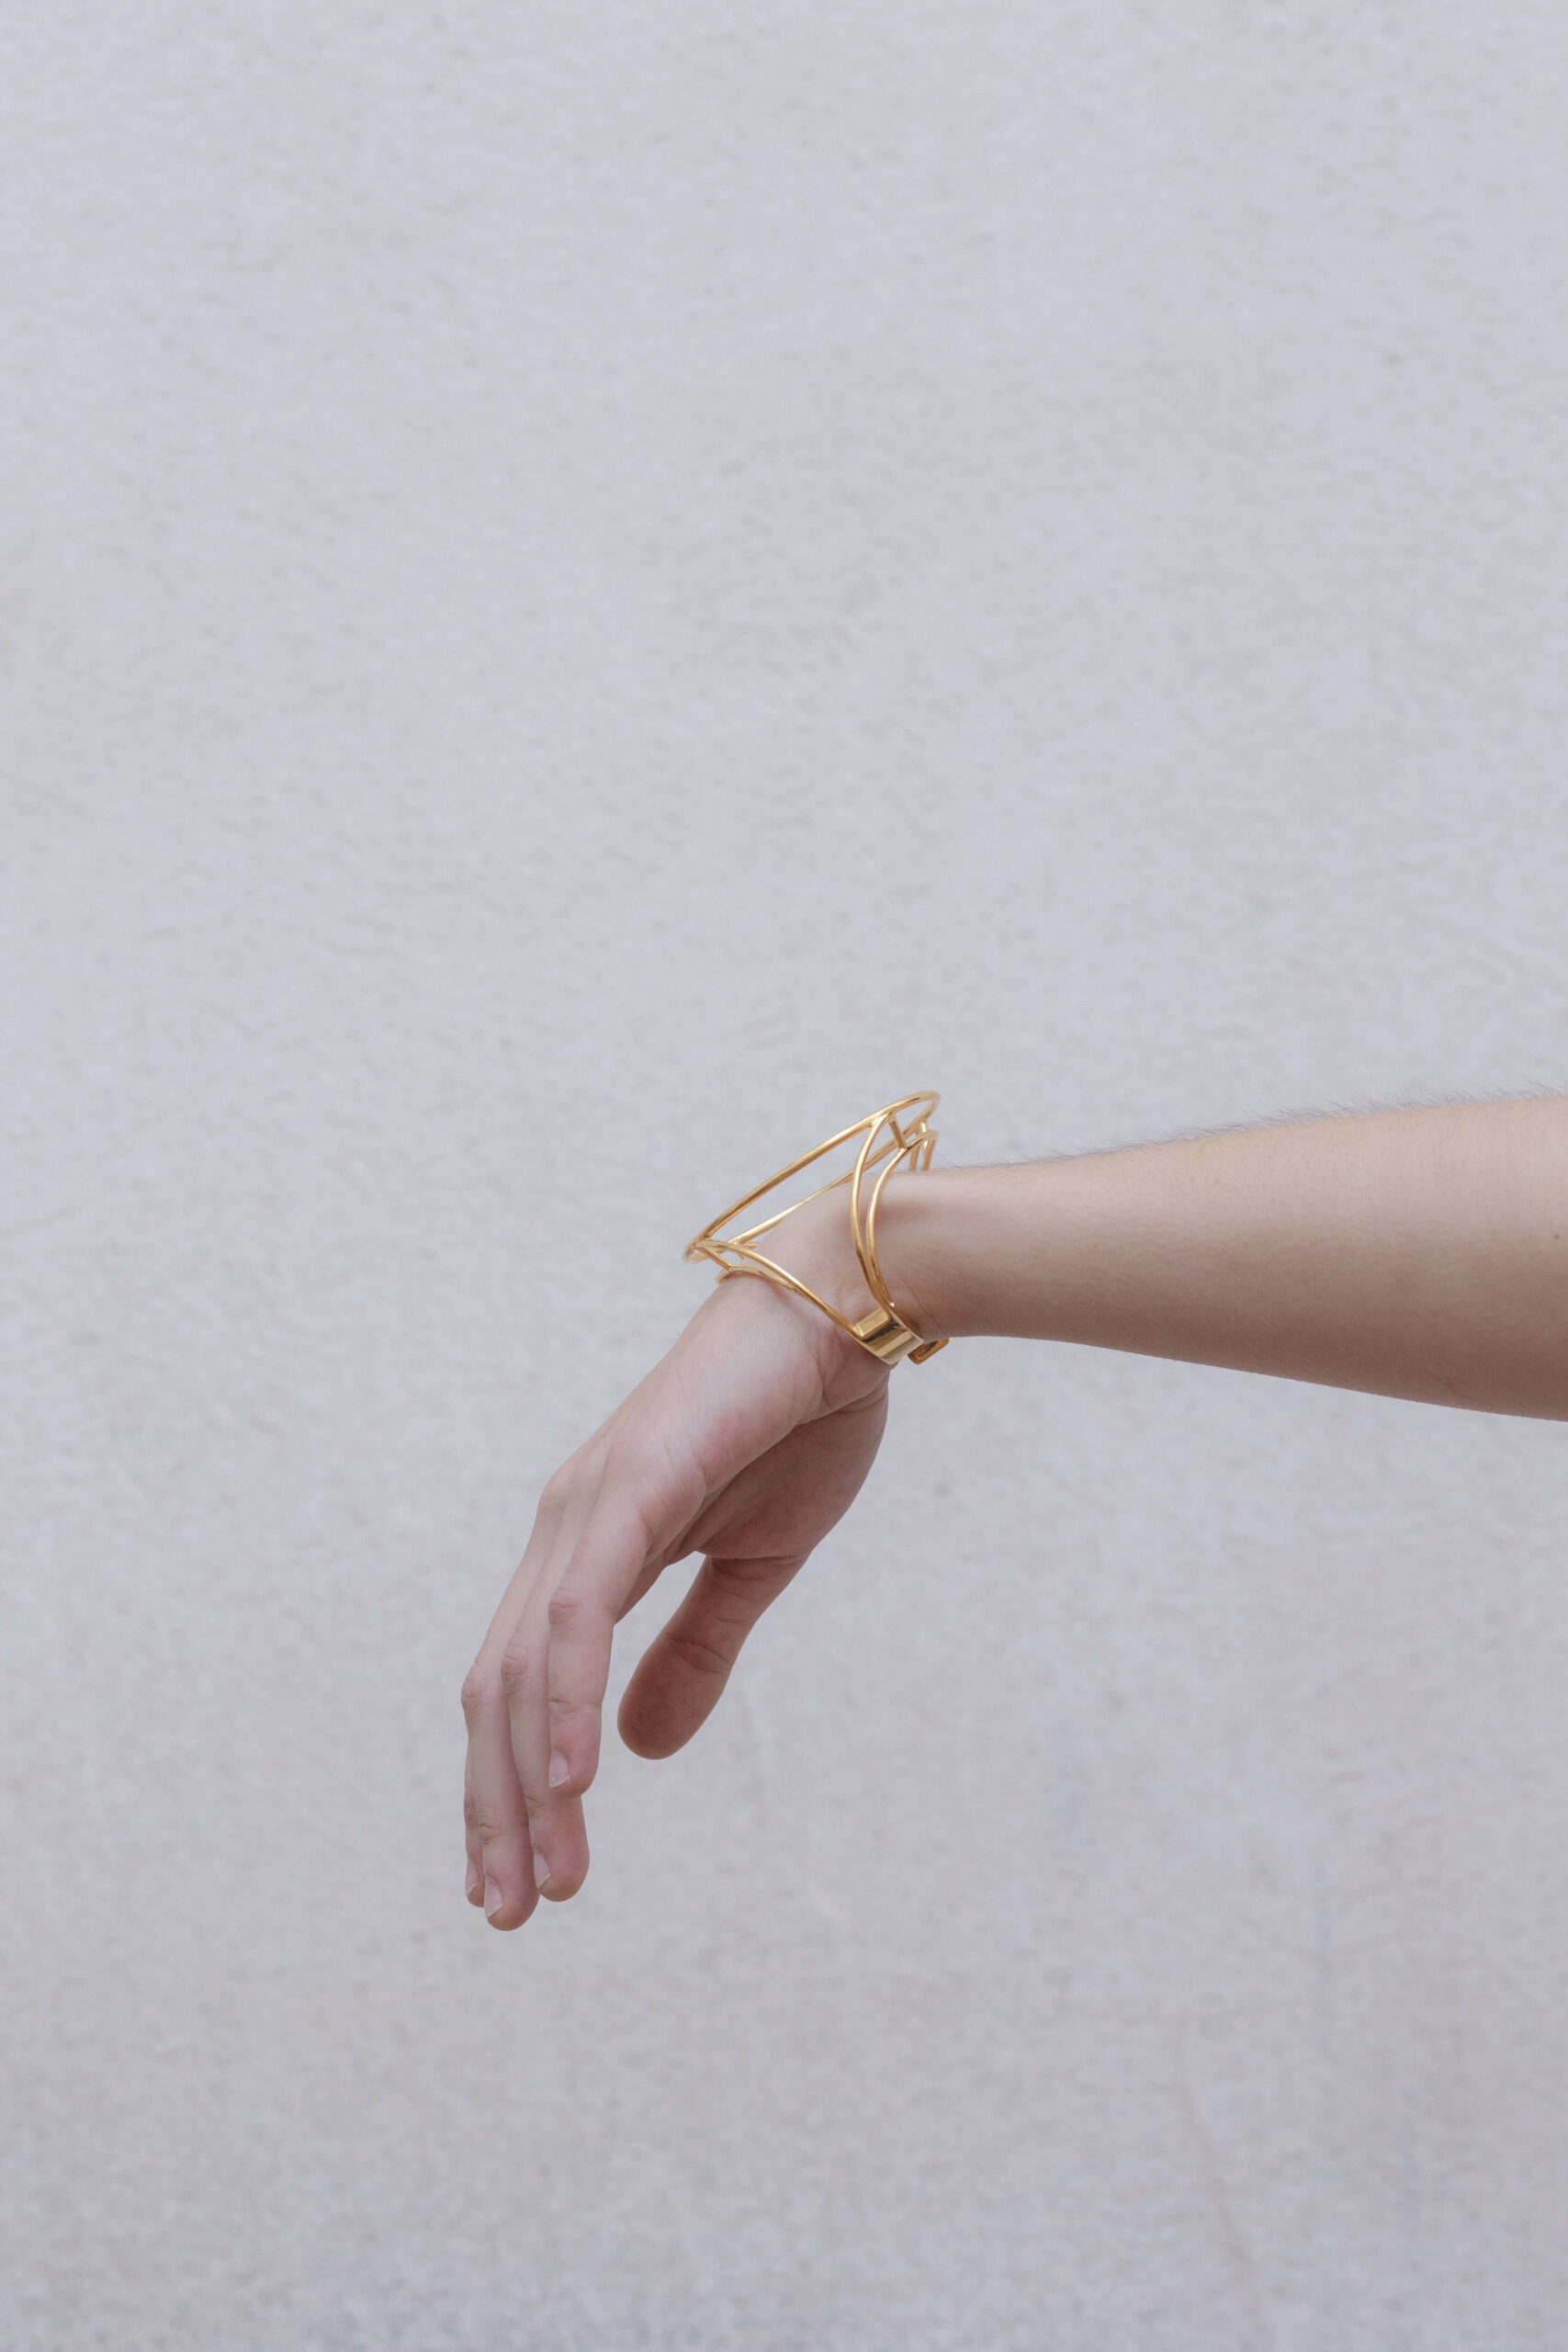 The-empty-signet-bracelet-by-glenda-lopez-lookbook